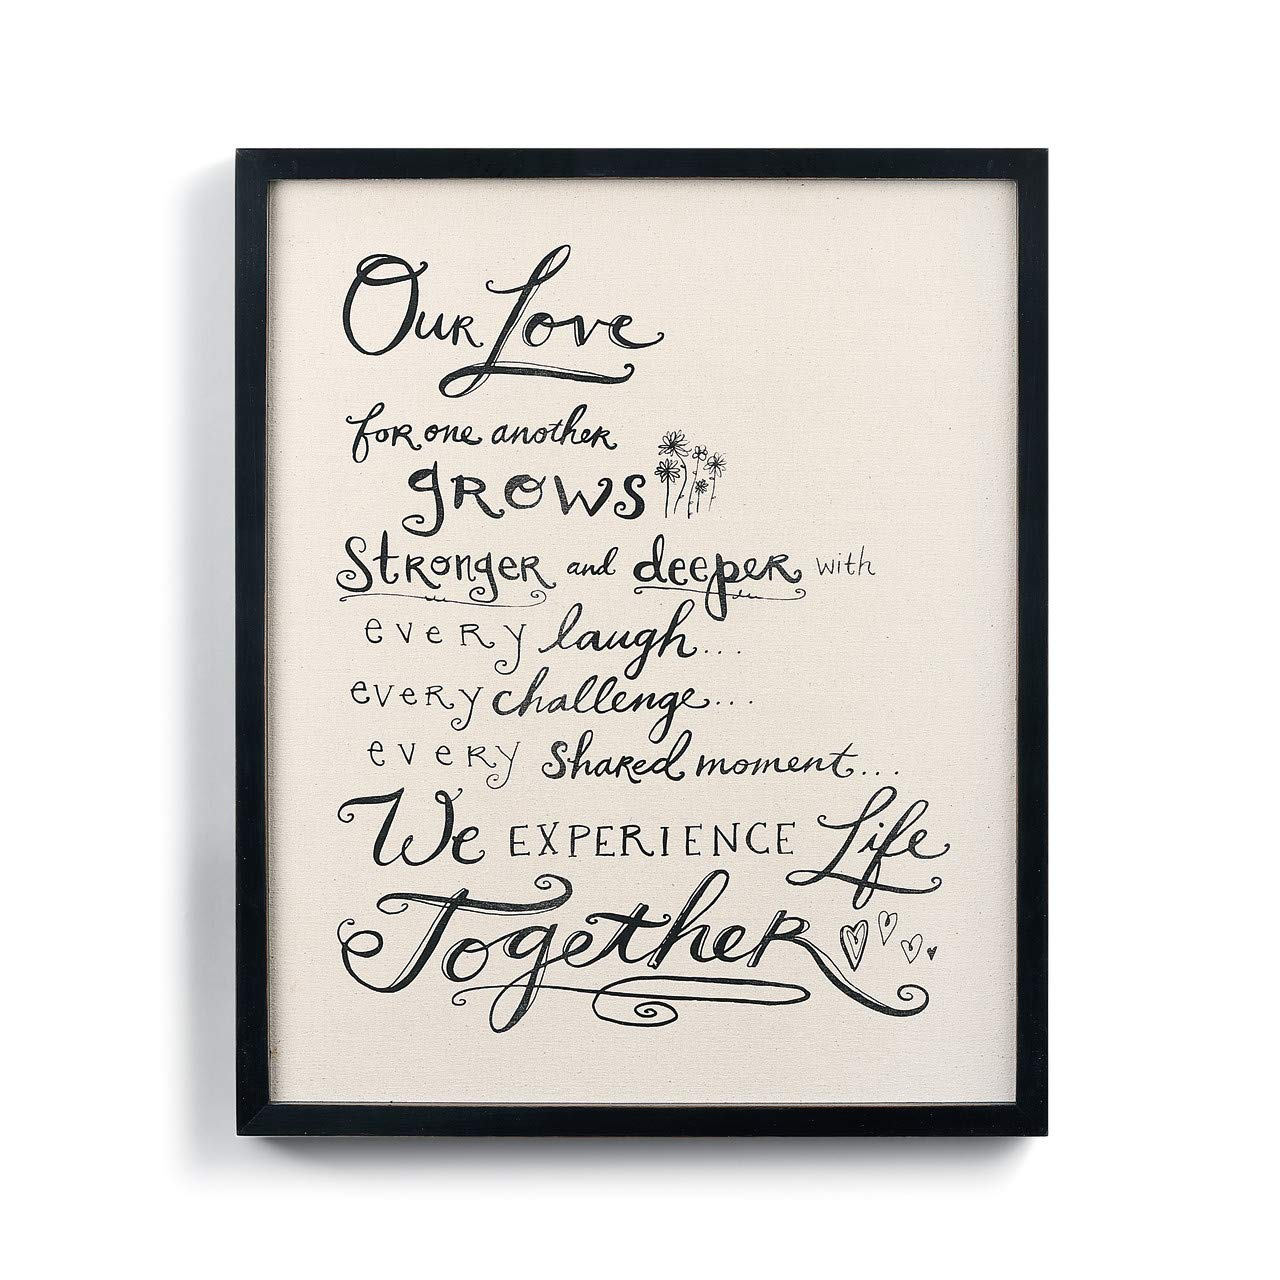 DEMDACO Love for One Another Manifesto Black and White 22 x 18 Wood Decorative Wall Art